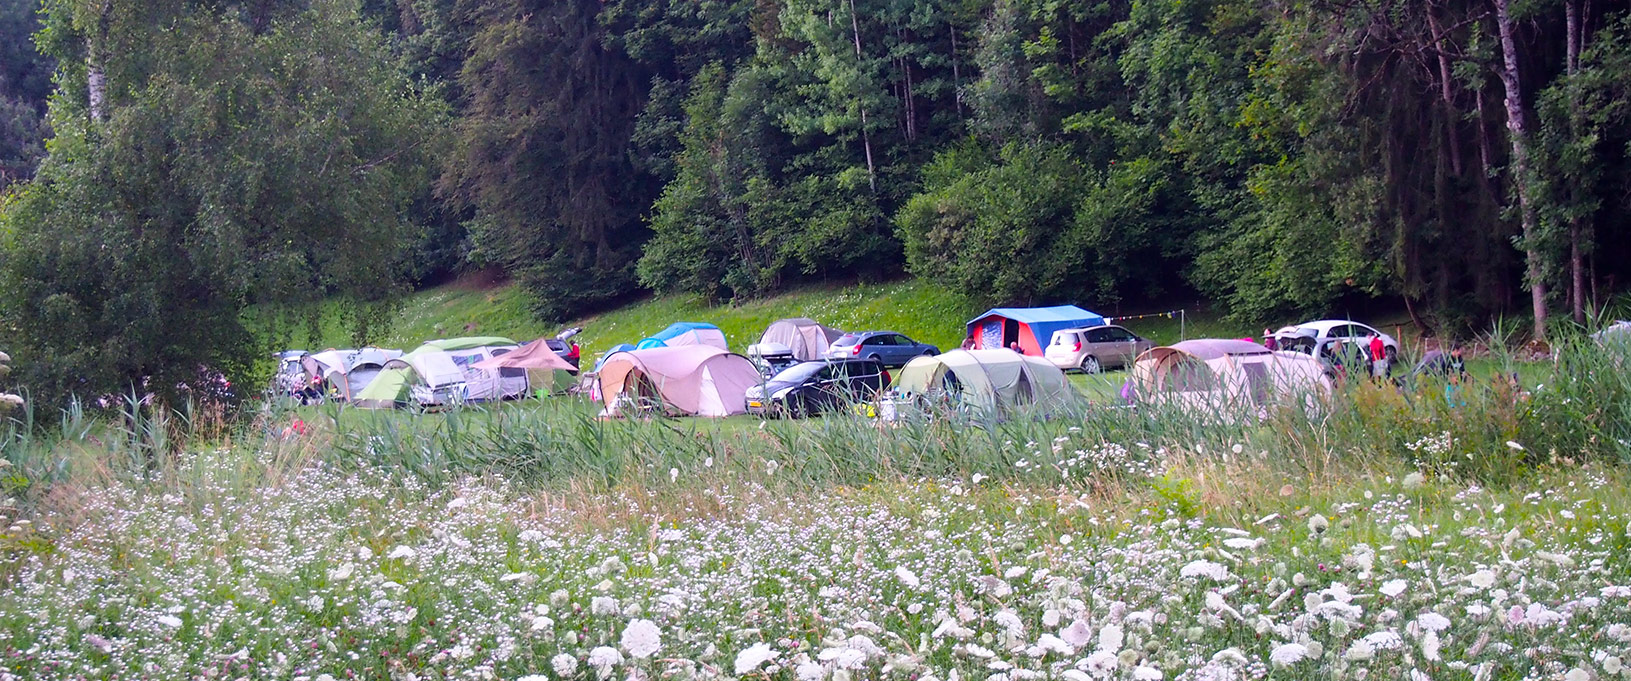 Accueil Camping Miage 11